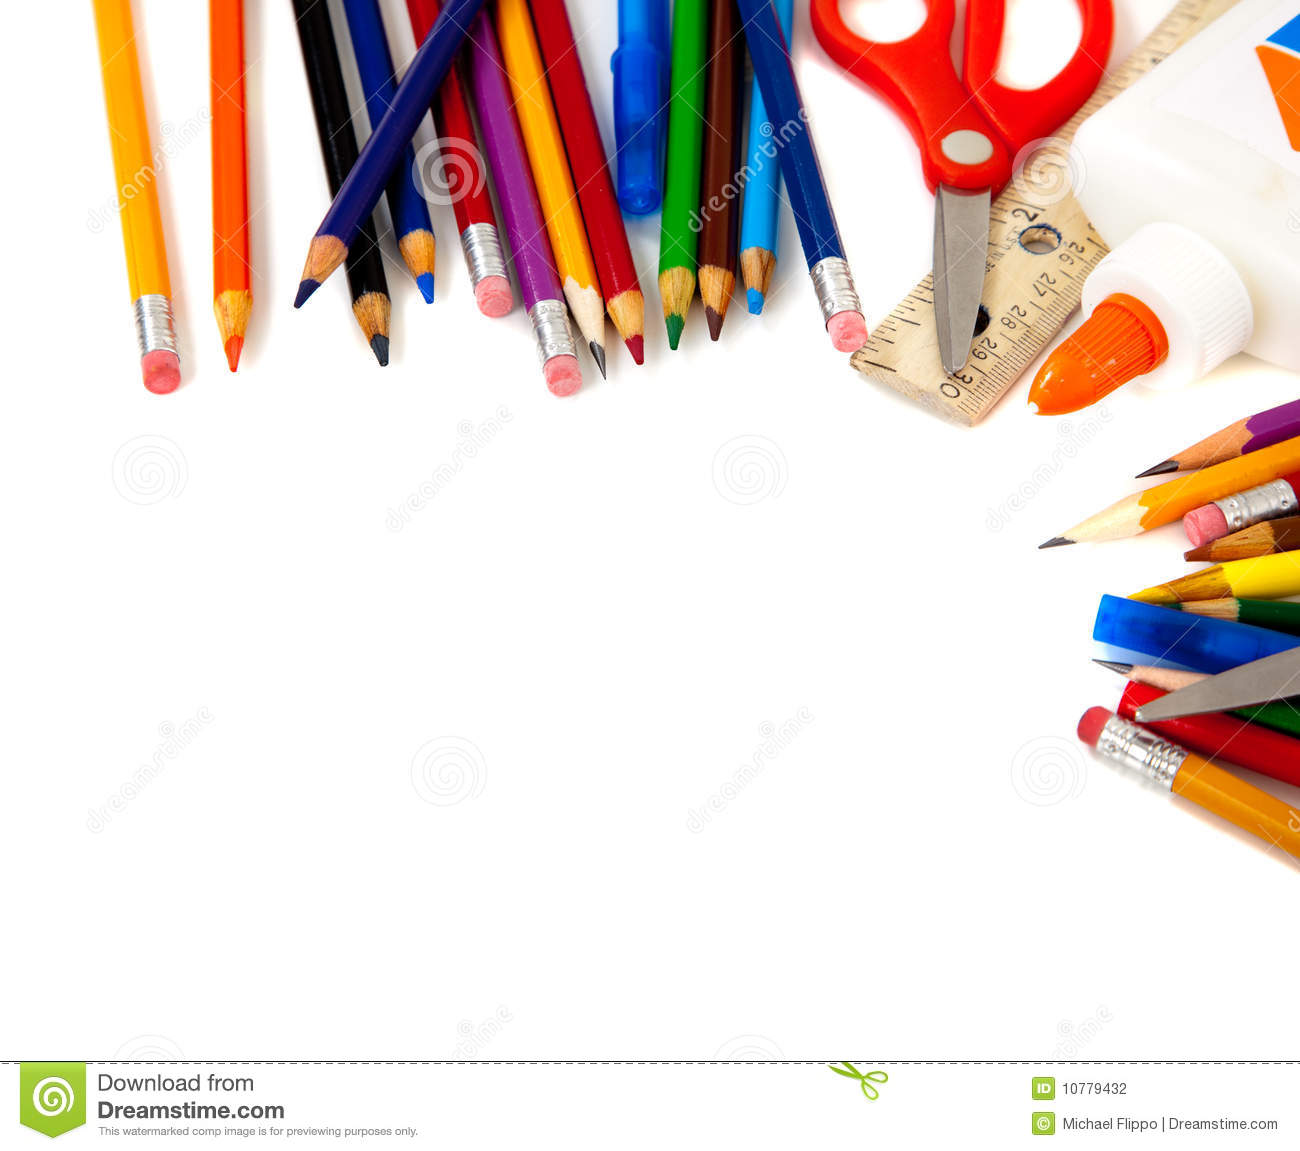 Assorted school supplies, including pens, pencils, scissors, glue and ...